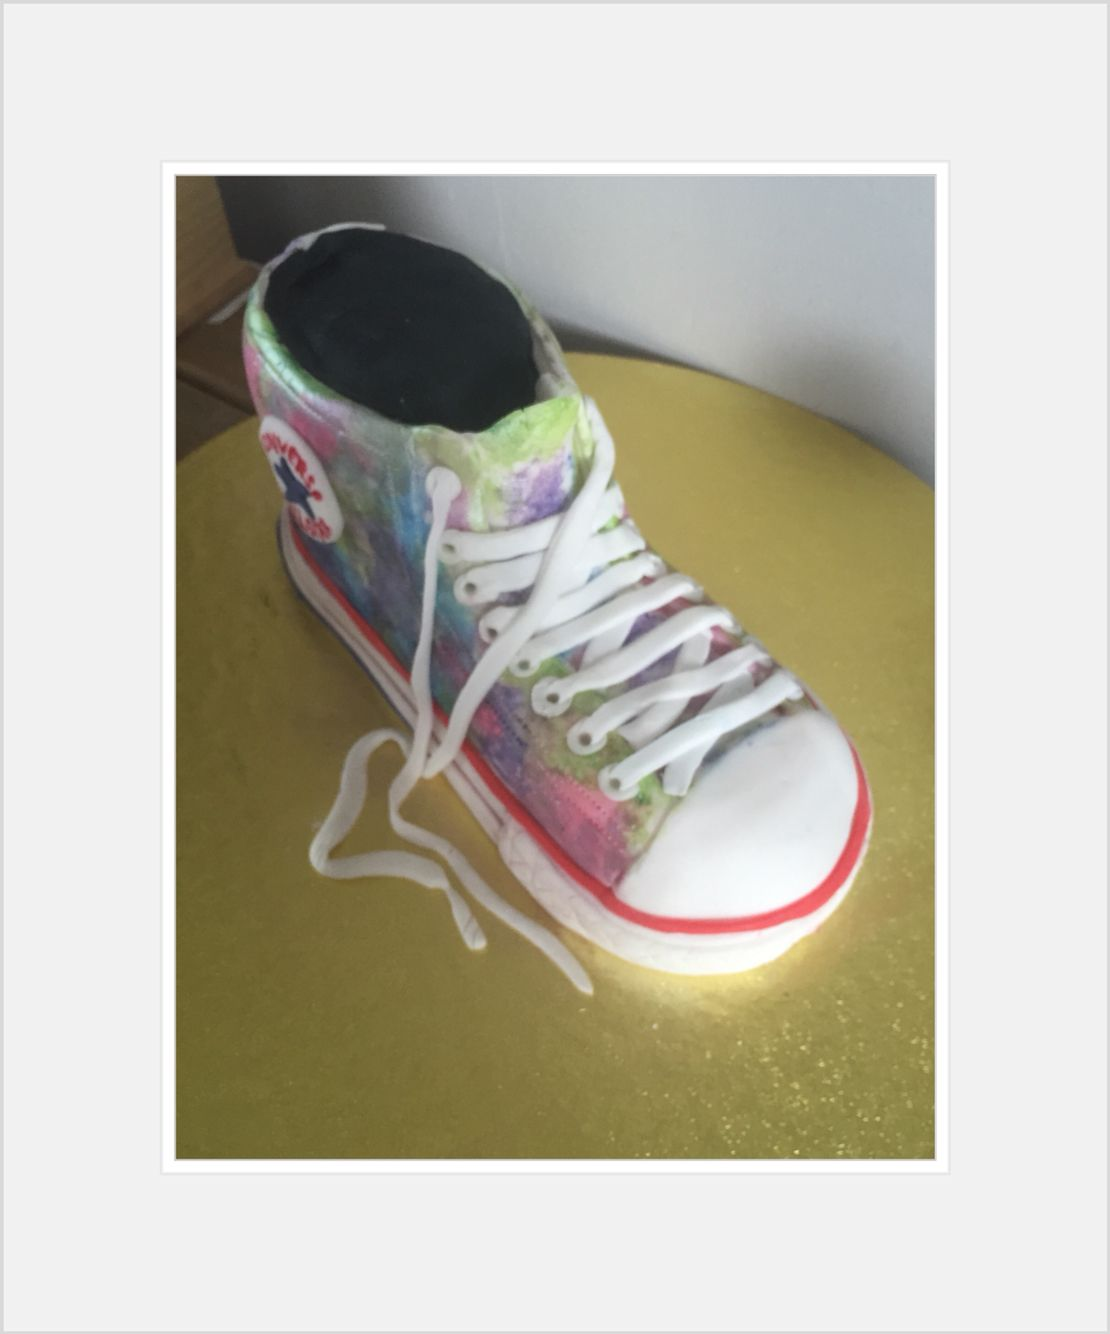 #Converse #Cake #Handpainted for daughters birthday